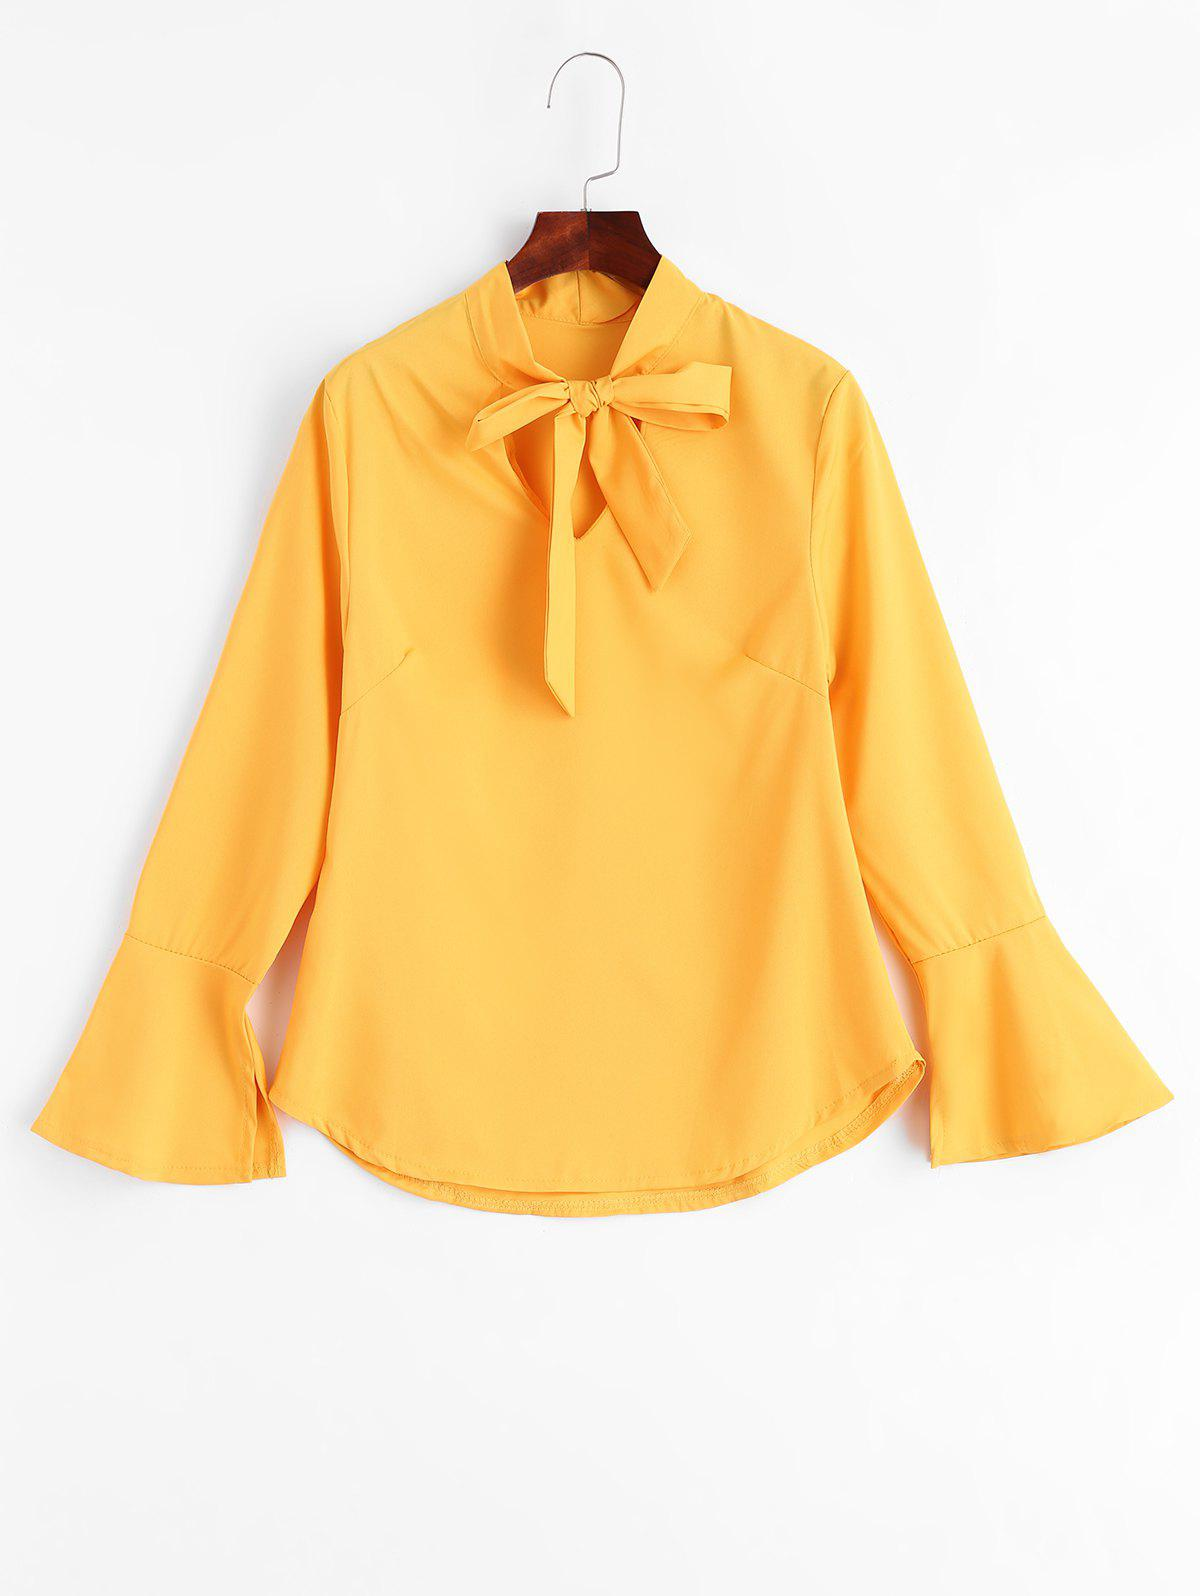 Slit Bell Sleeve Bow Tie Blouse bow tie detail striped blouse